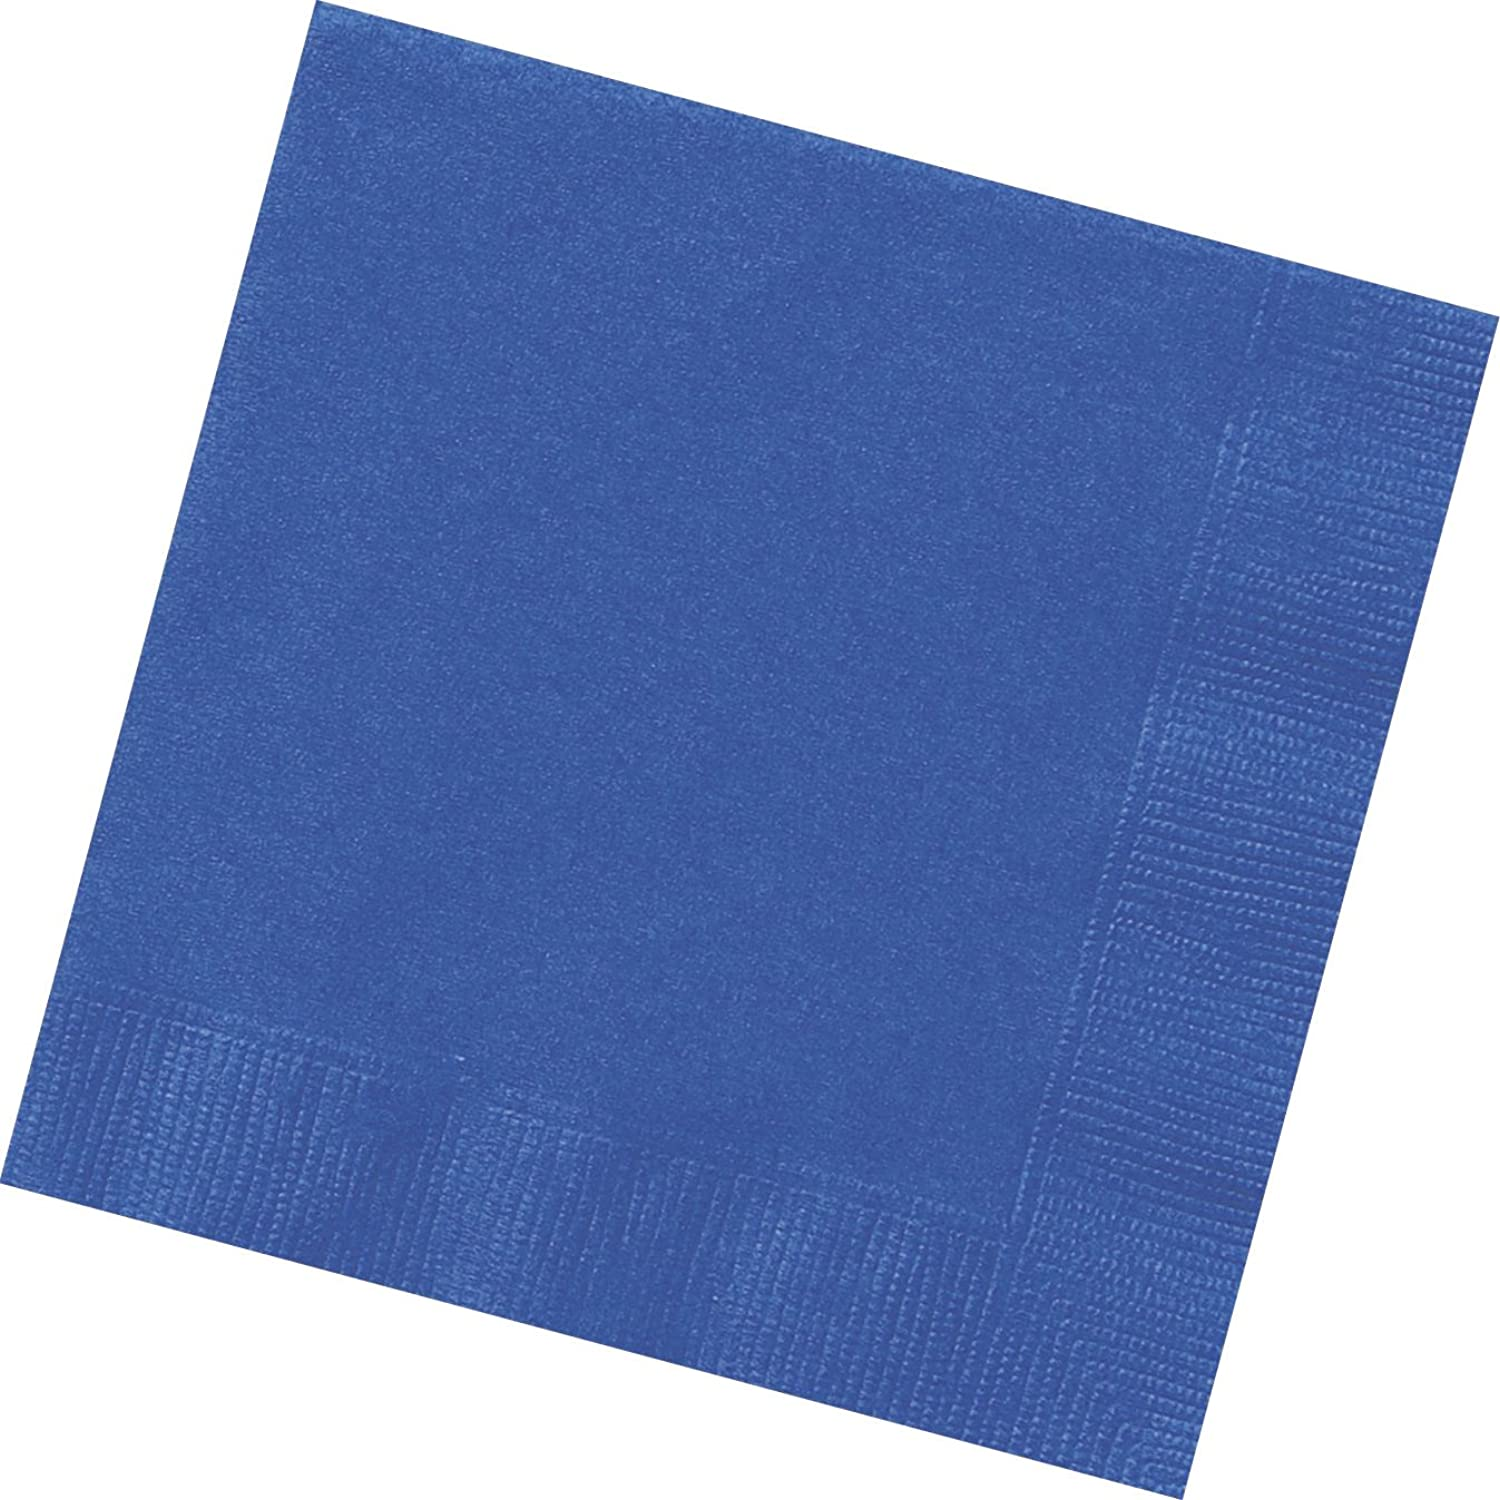 Wicked Wicked  AWESOME VALUE BULK PARTY TABLEWARE  ROYAL blueE  FREE UK POSTAGE  (1000 Pack, Paper Napkins)